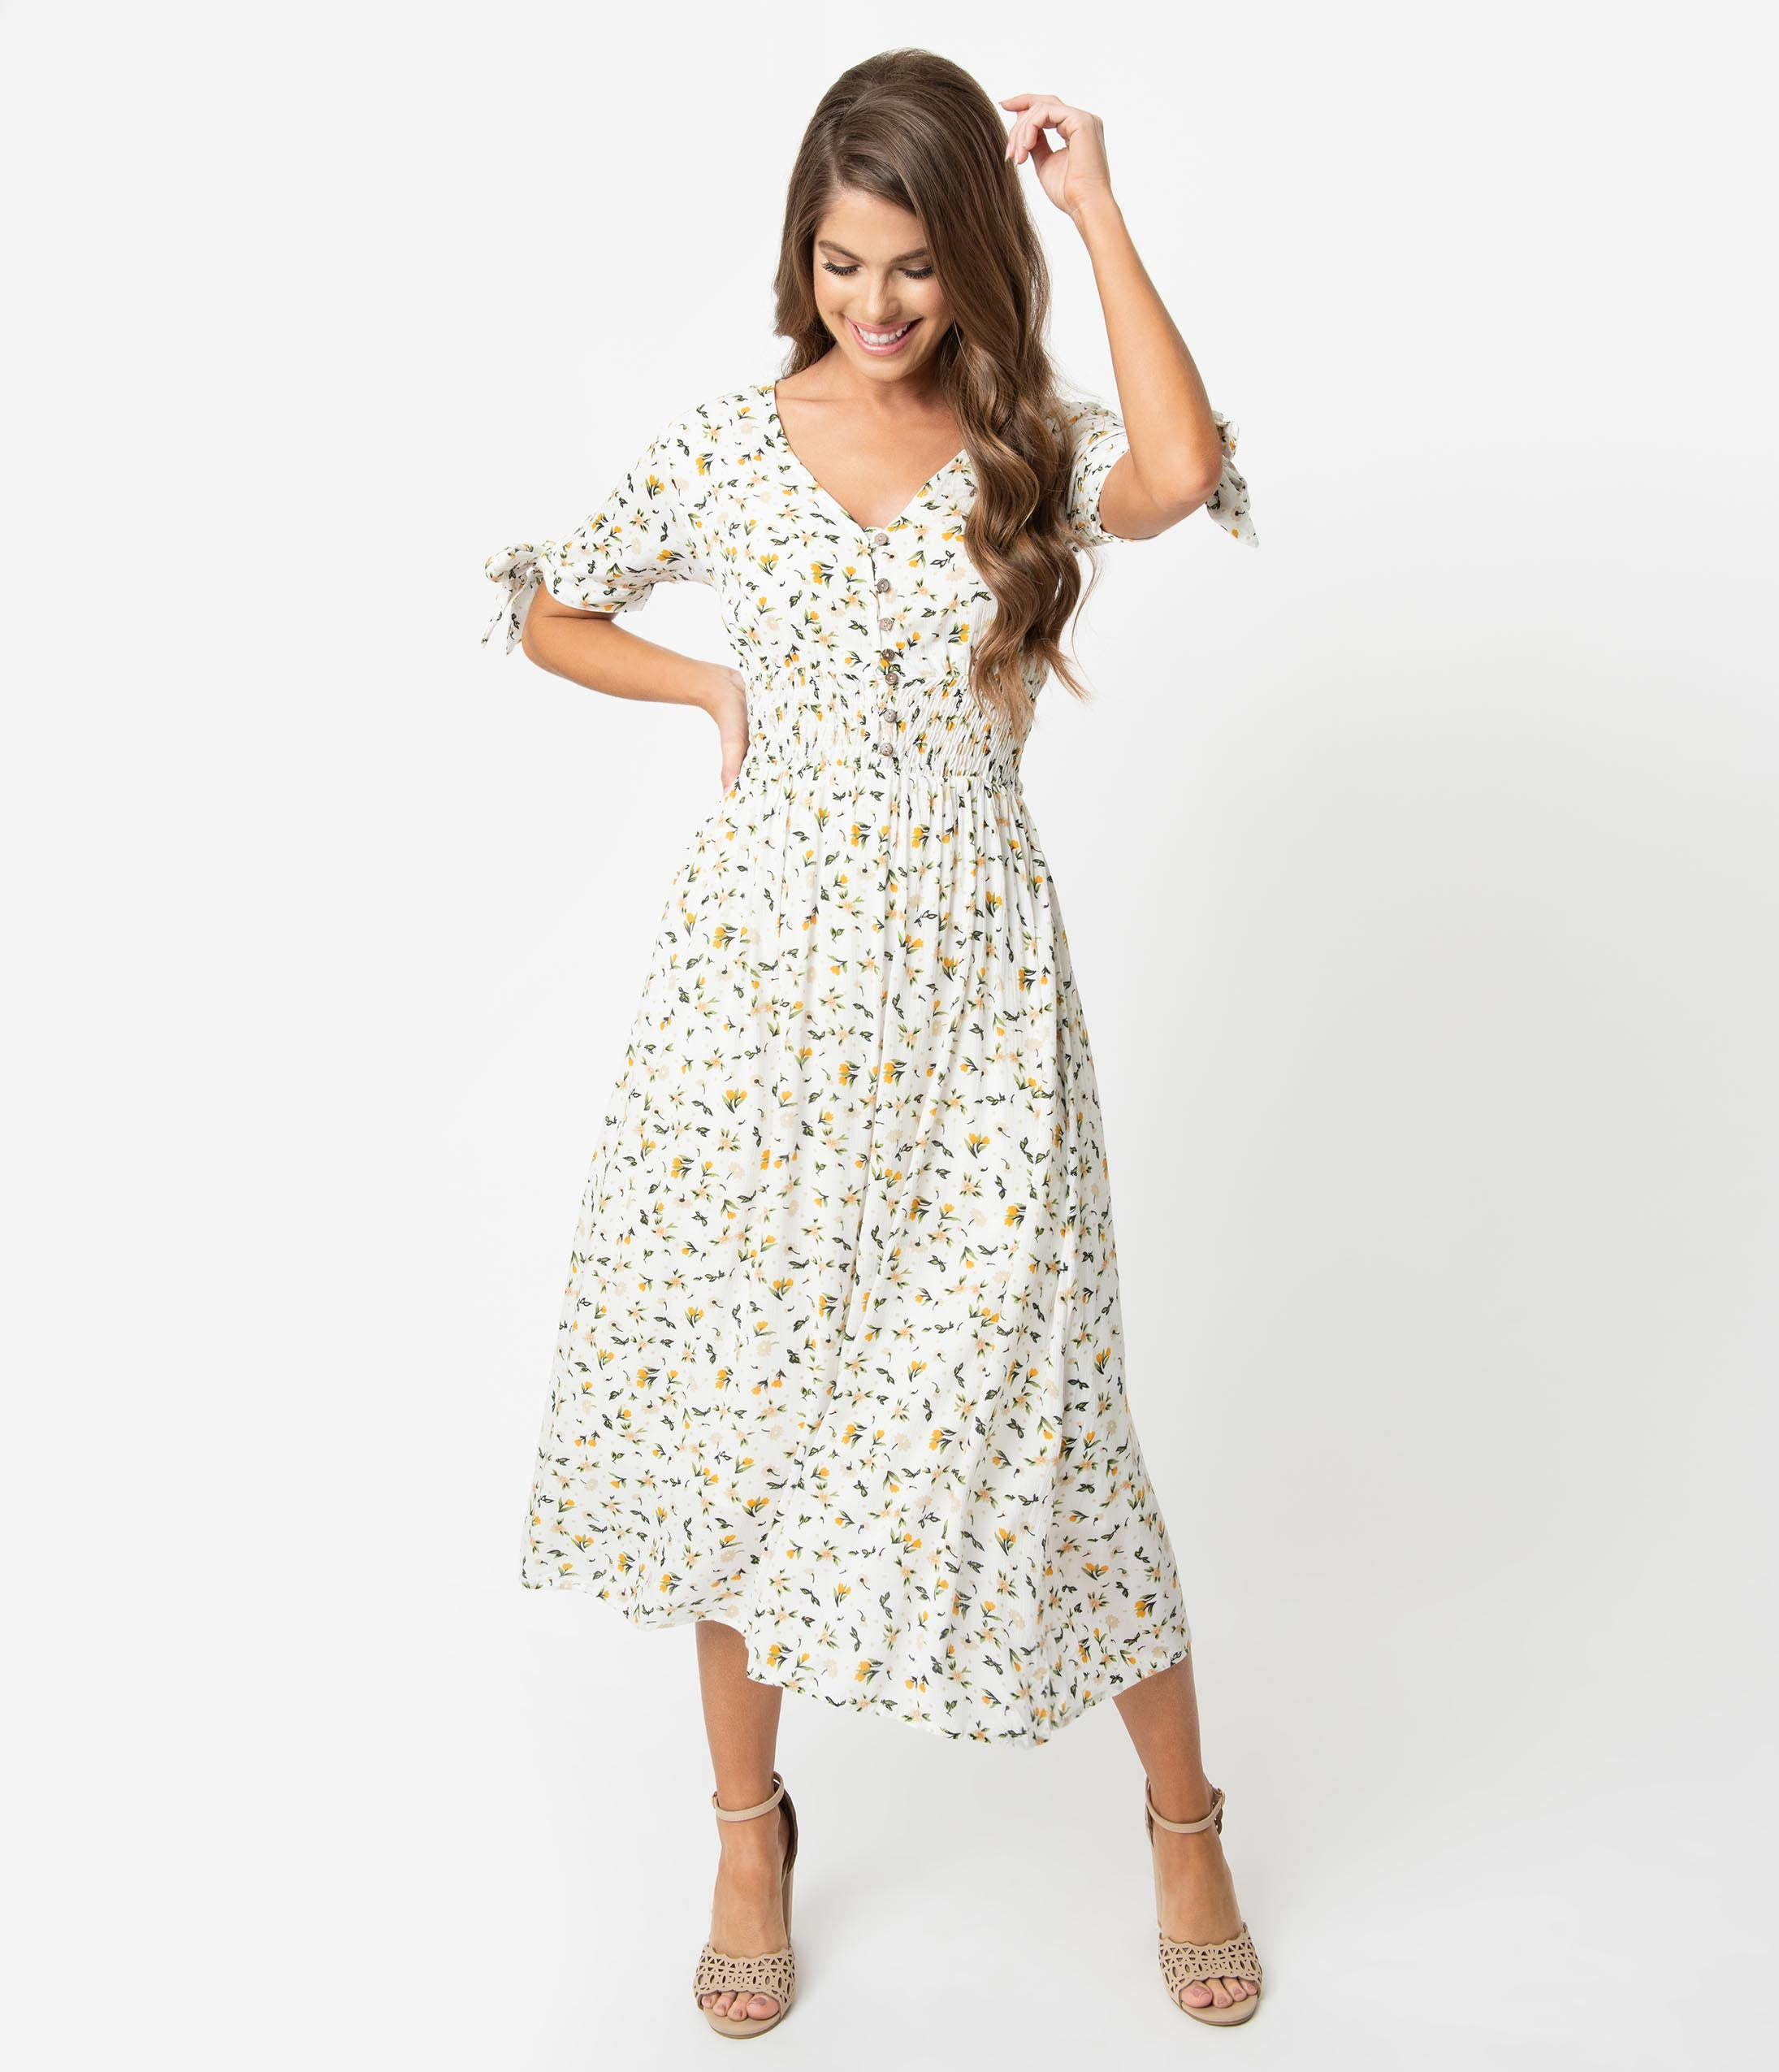 3a6f87d27697 1970s Style Ivory & Yellow Delicate Floral Print Short Sleeve Midi Dress